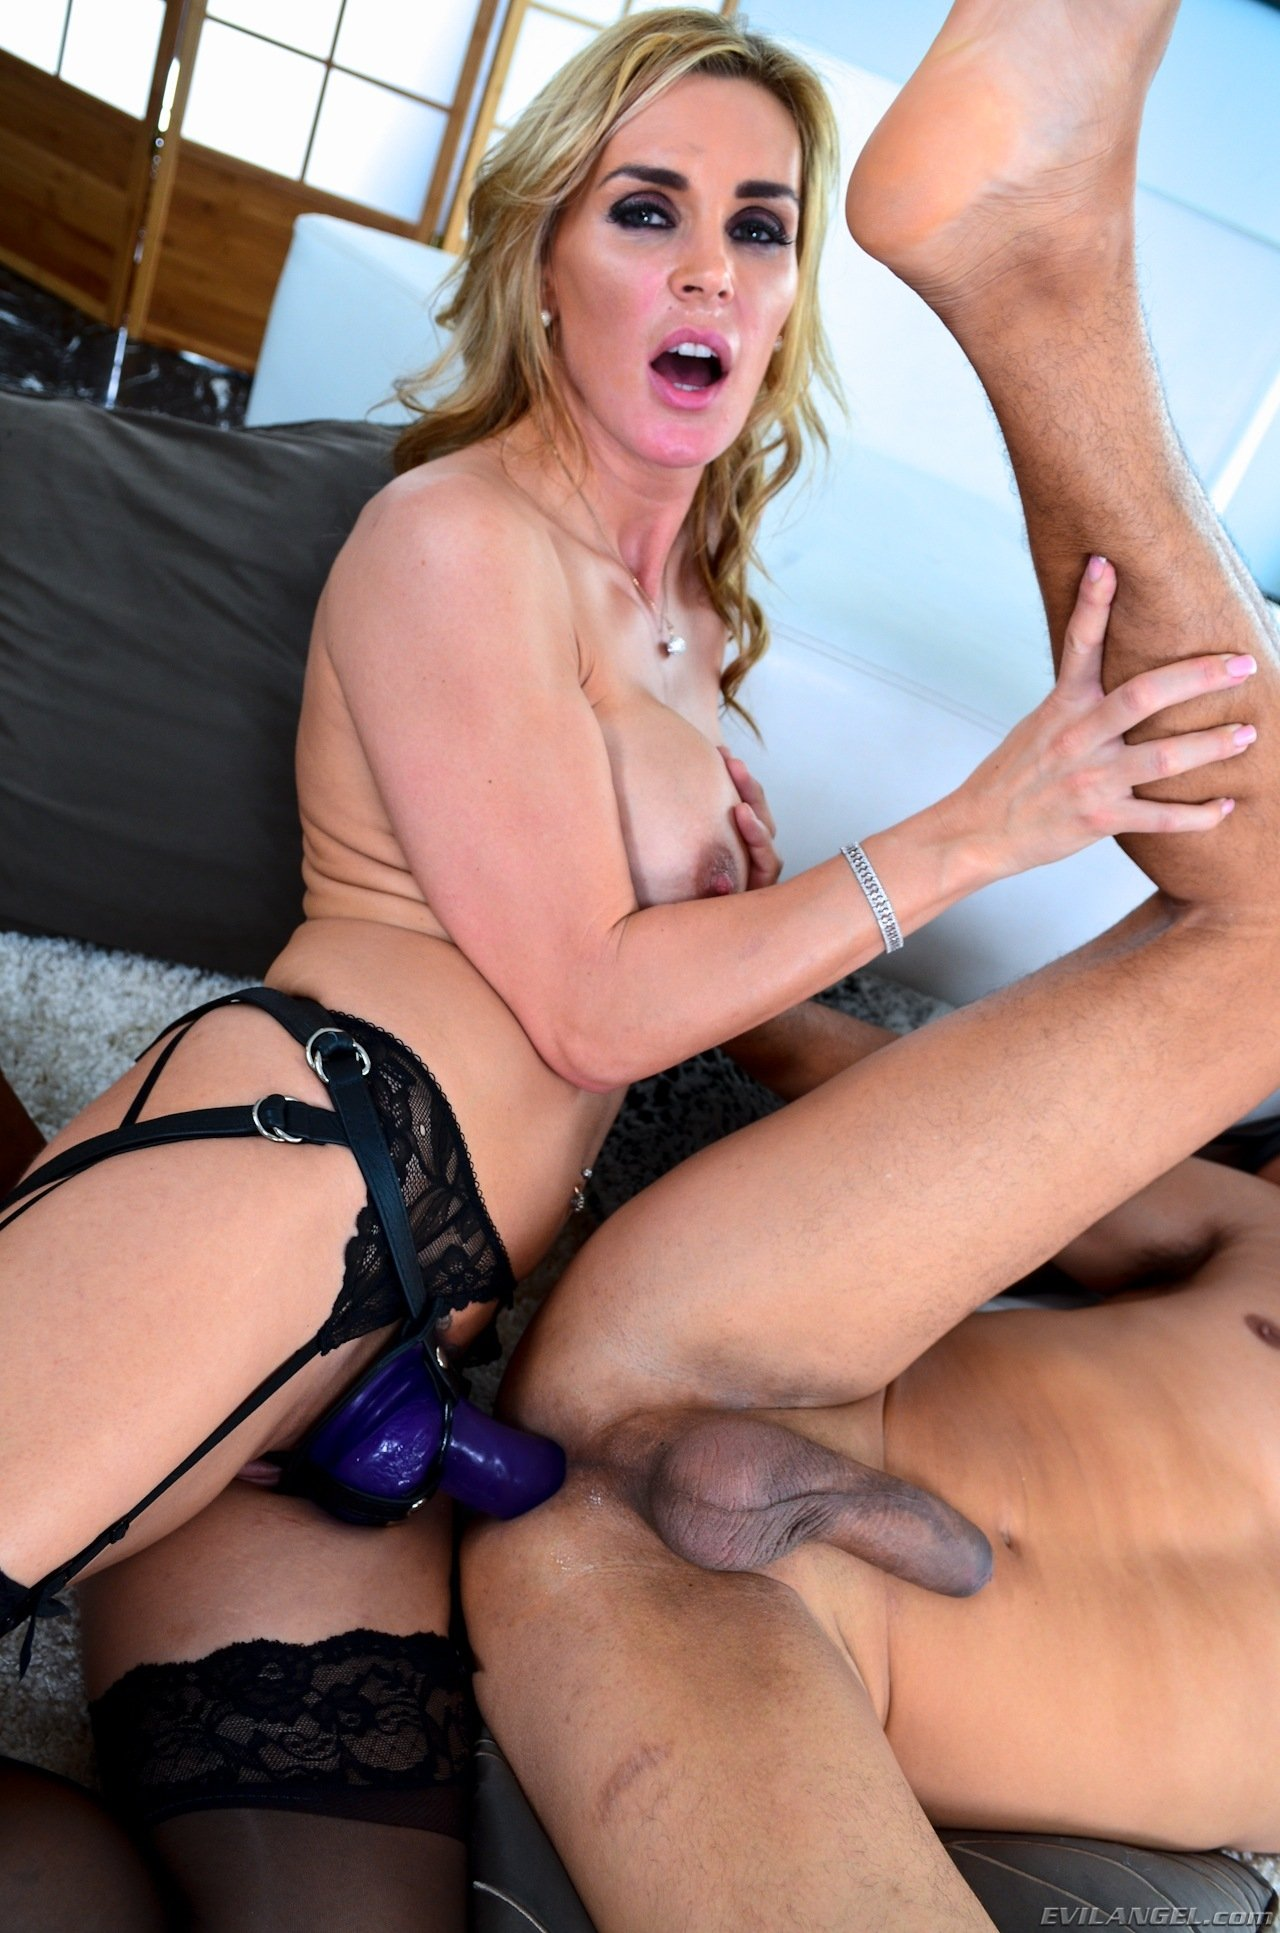 Wife watch him suck Czech casting pierced sunny leone removing her bra and panty